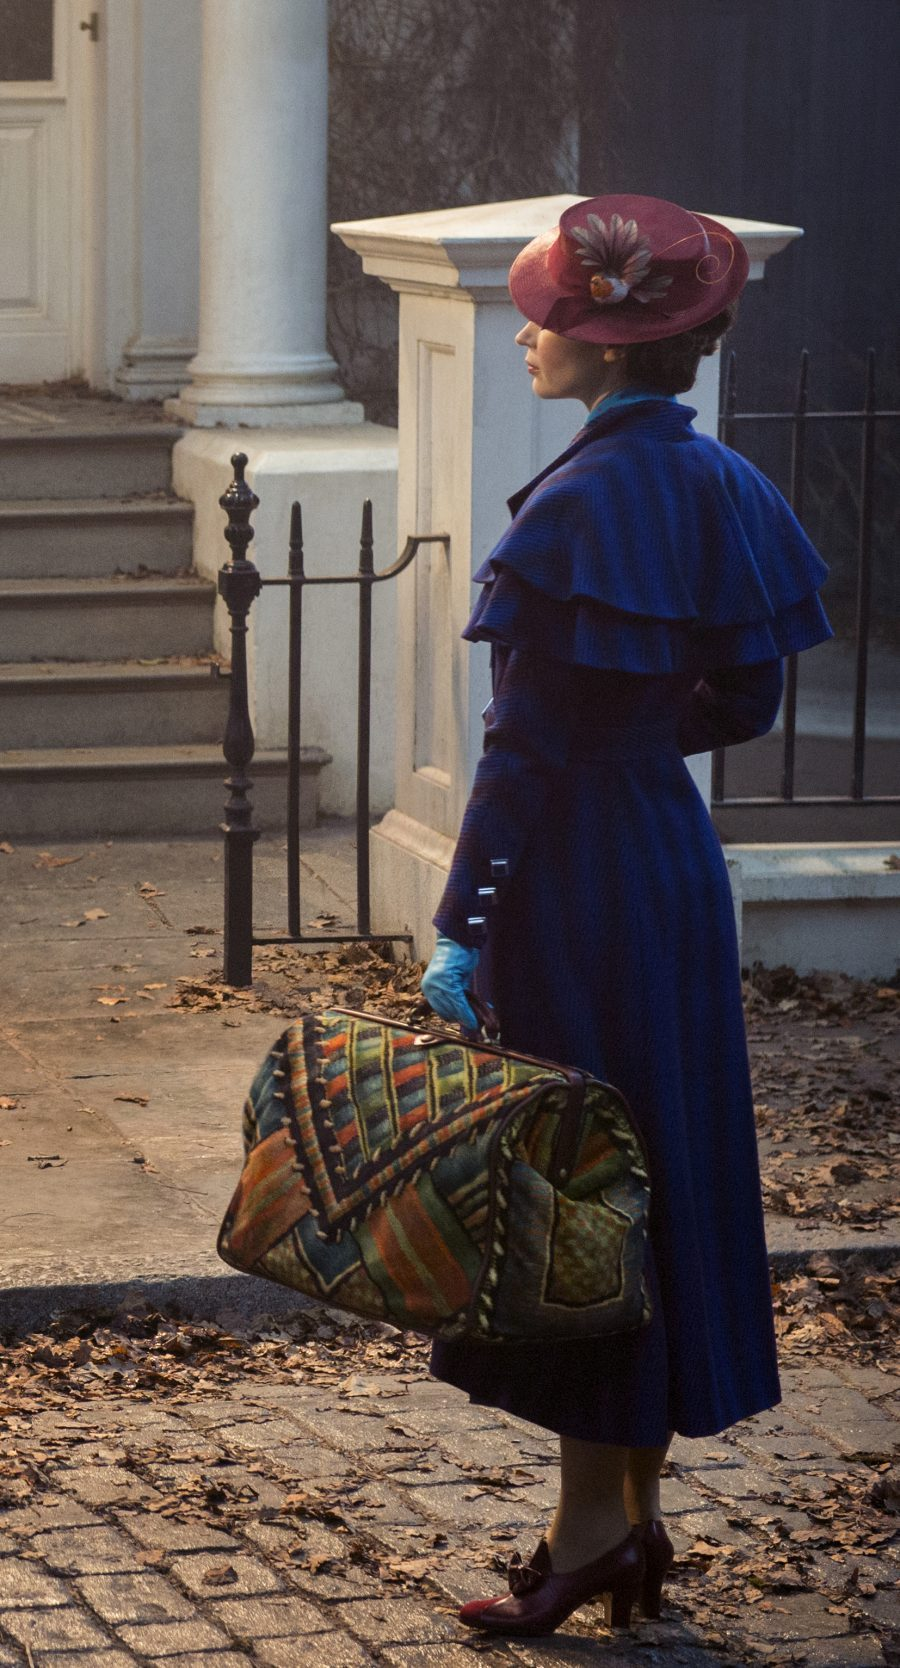 Mary Poppins (Emily Blunt) returns to the Banks home after many years and uses her magical skills to help the now grown up Michael and Jane rediscover the joy and wonder missing in their lives in MARY POPPINS RETURNS, directed by Rob Marshall.